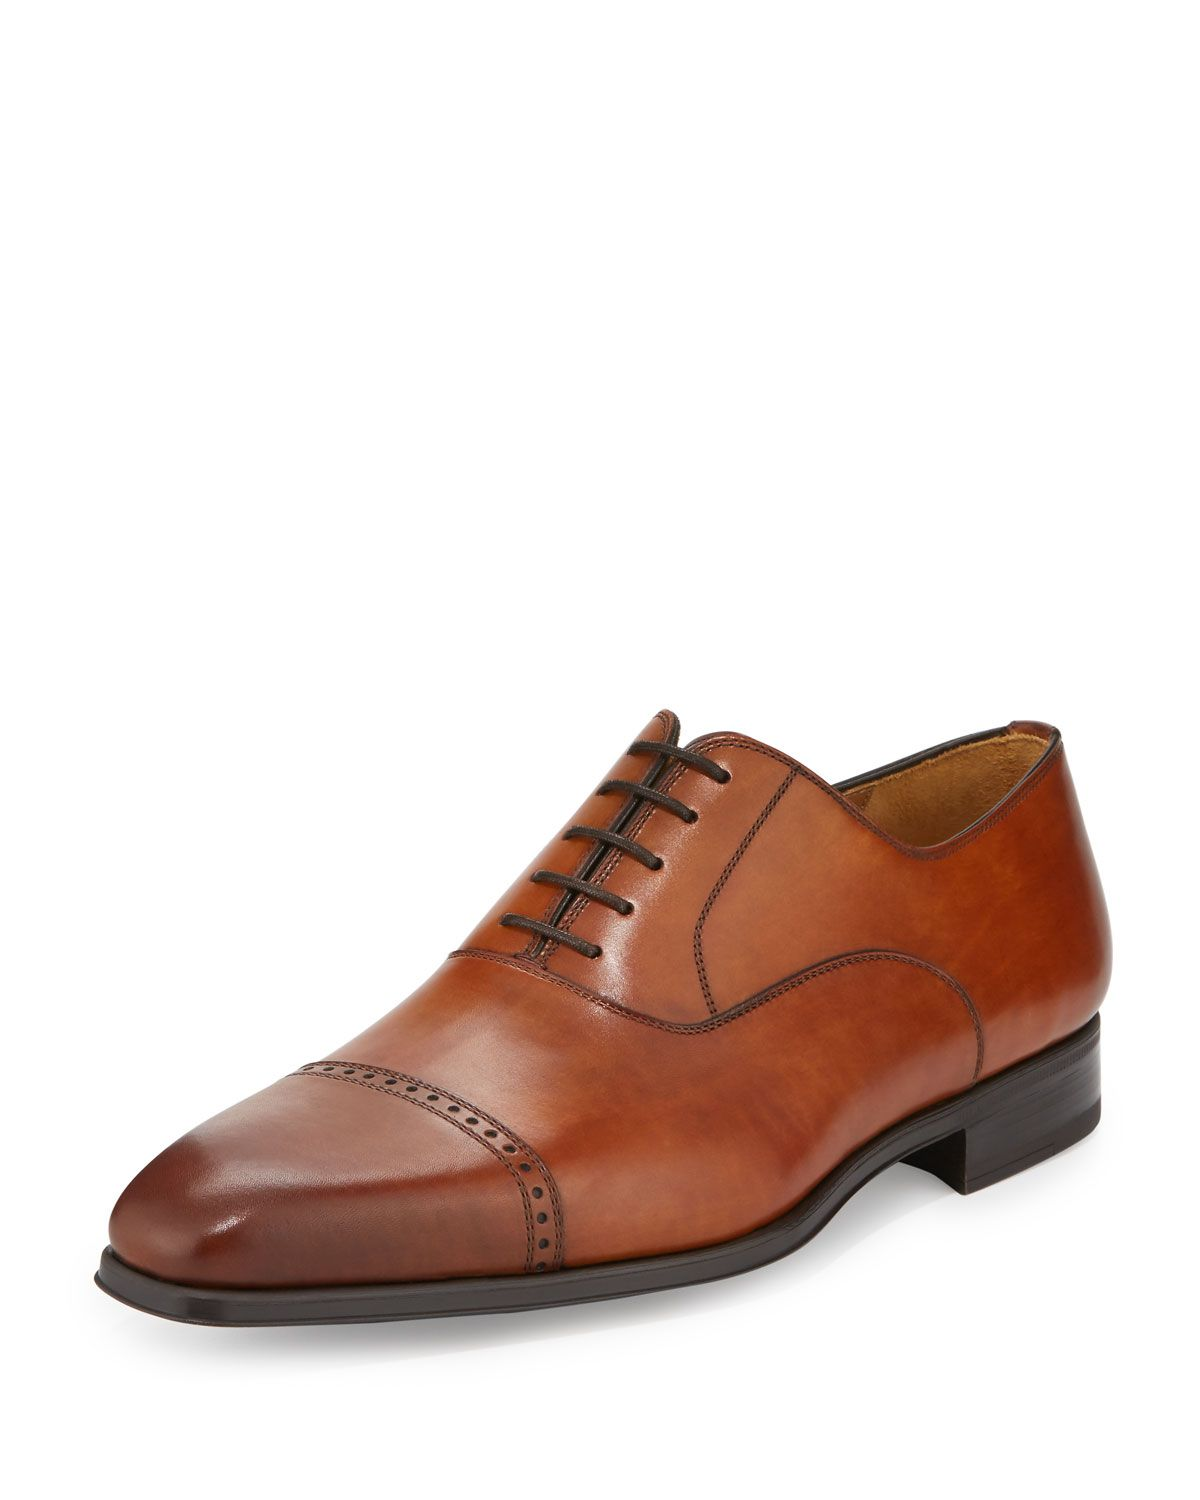 936af2f639bf Magnanni for Neiman Marcus Wolden Lace-Up Leather Oxford